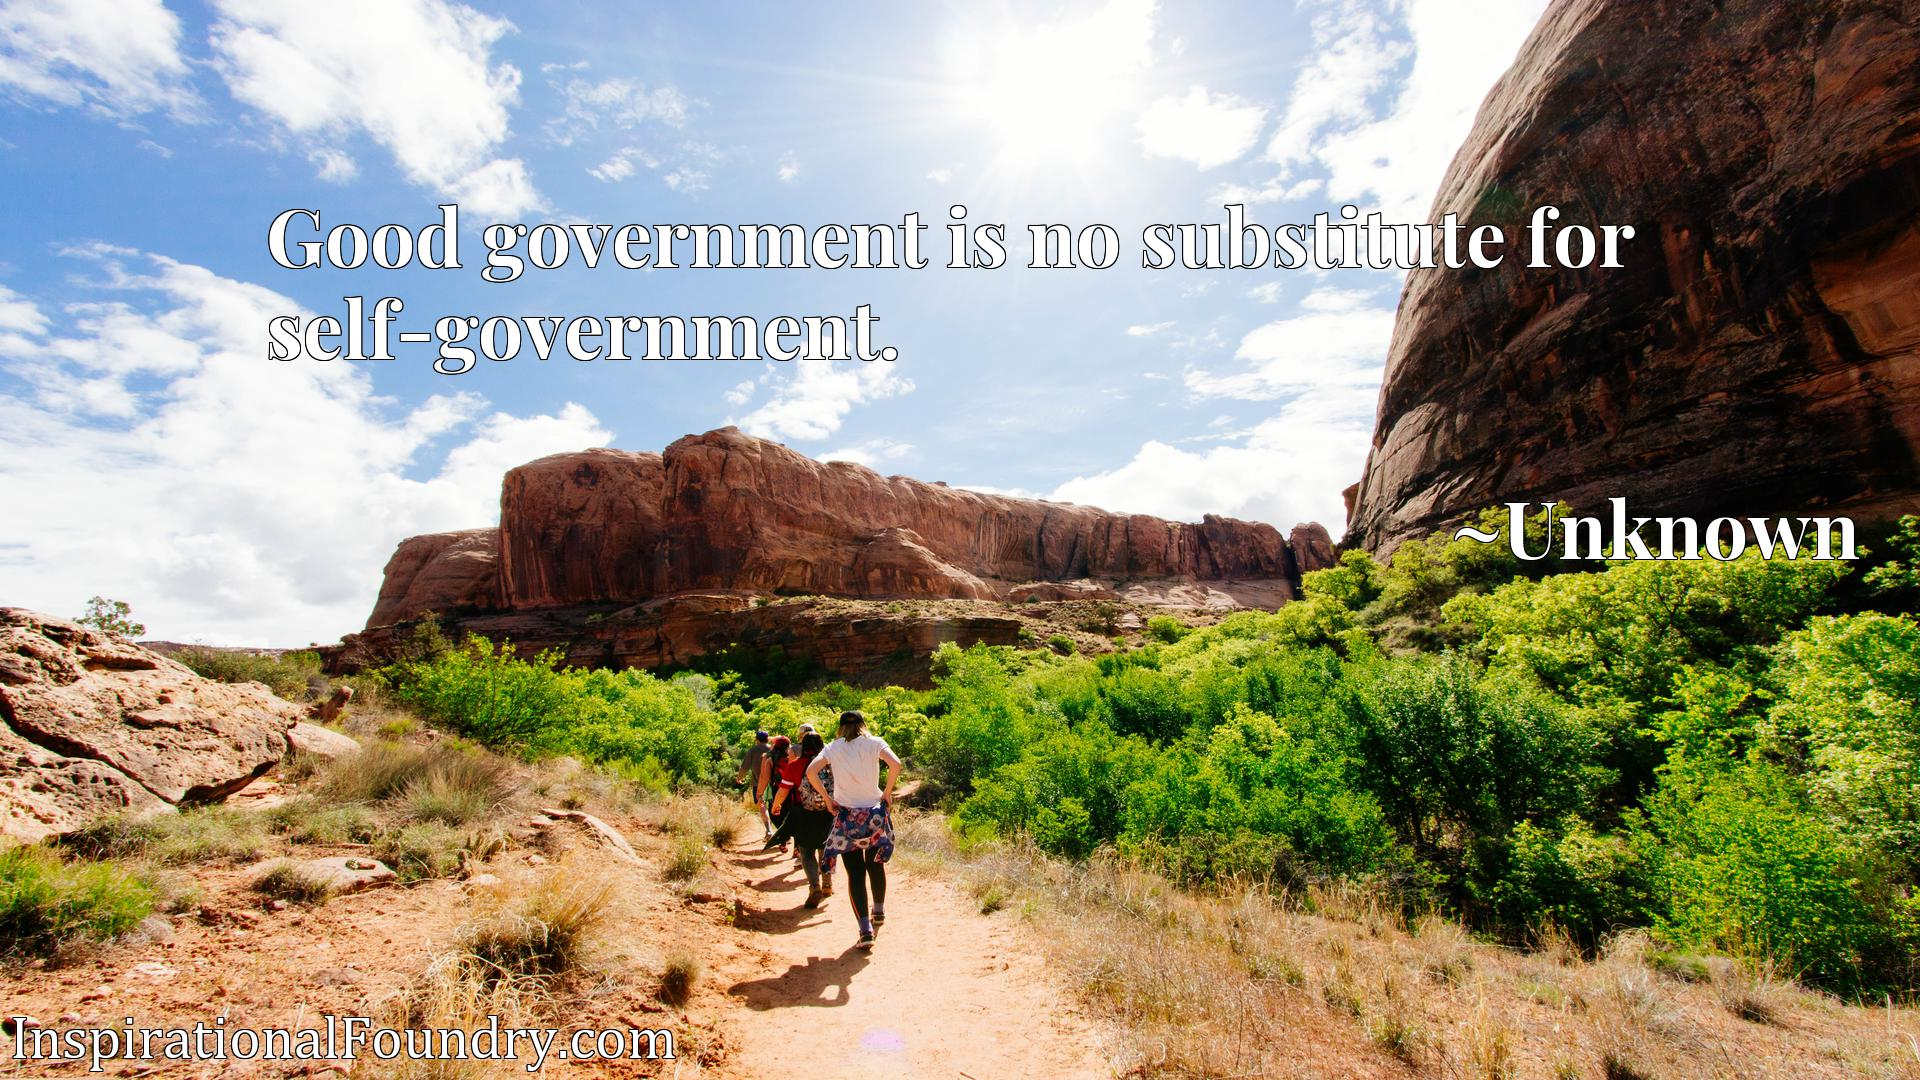 Good government is no substitute for self-government.